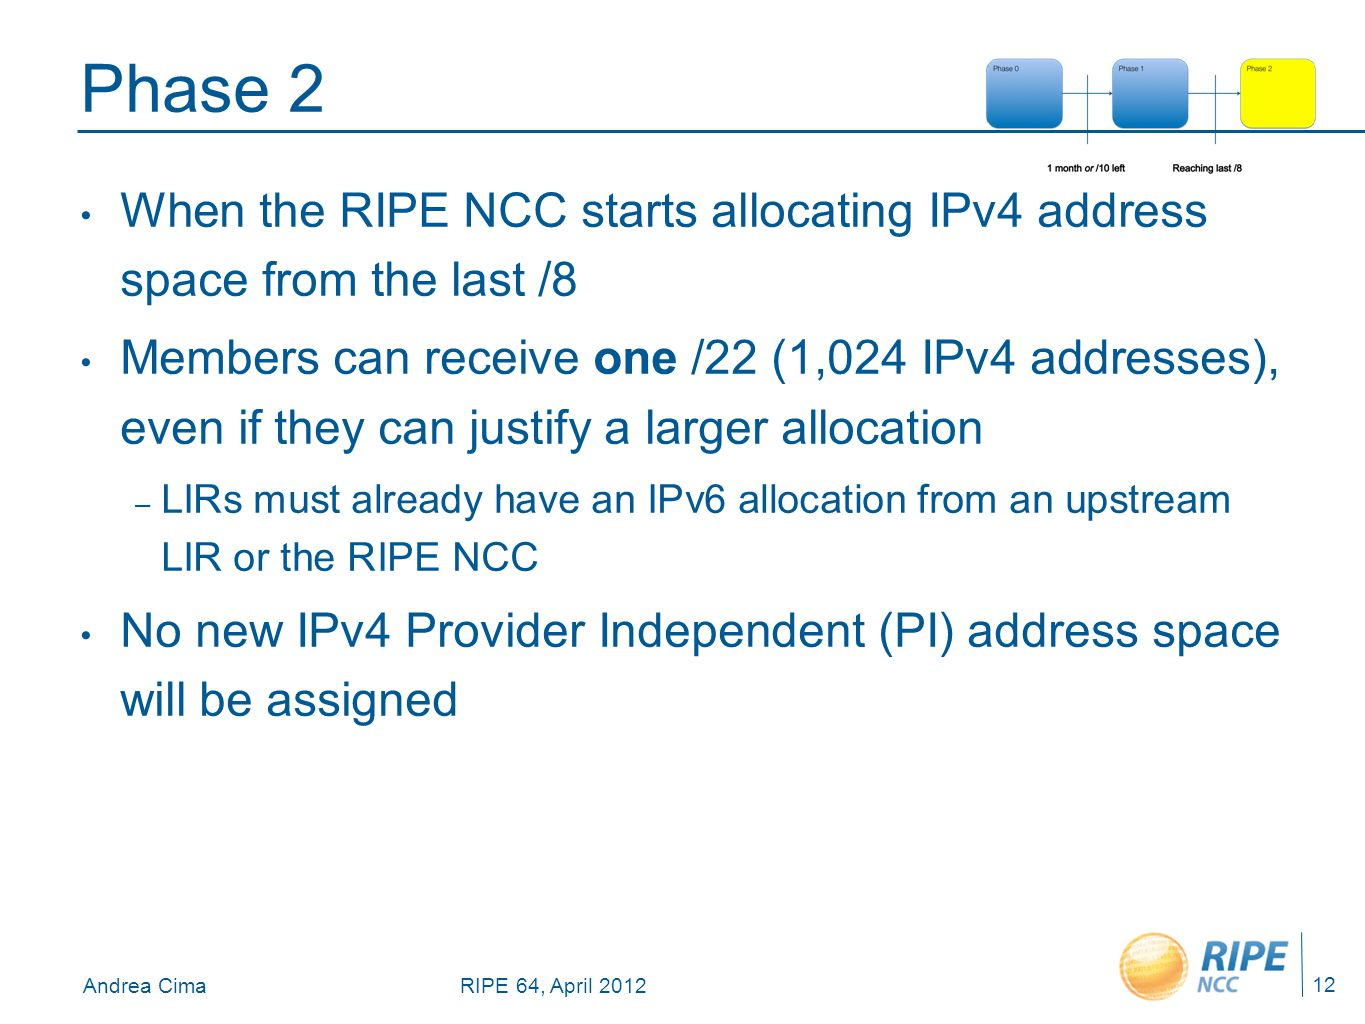 Andrea CimaRIPE 64, April 2012 Phase 2 When the RIPE NCC starts allocating IPv4 address space from the last /8 Members can receive one /22 (1,024 IPv4 addresses), even if they can justify a larger allocation – LIRs must already have an IPv6 allocation from an upstream LIR or the RIPE NCC No new IPv4 Provider Independent (PI) address space will be assigned 12